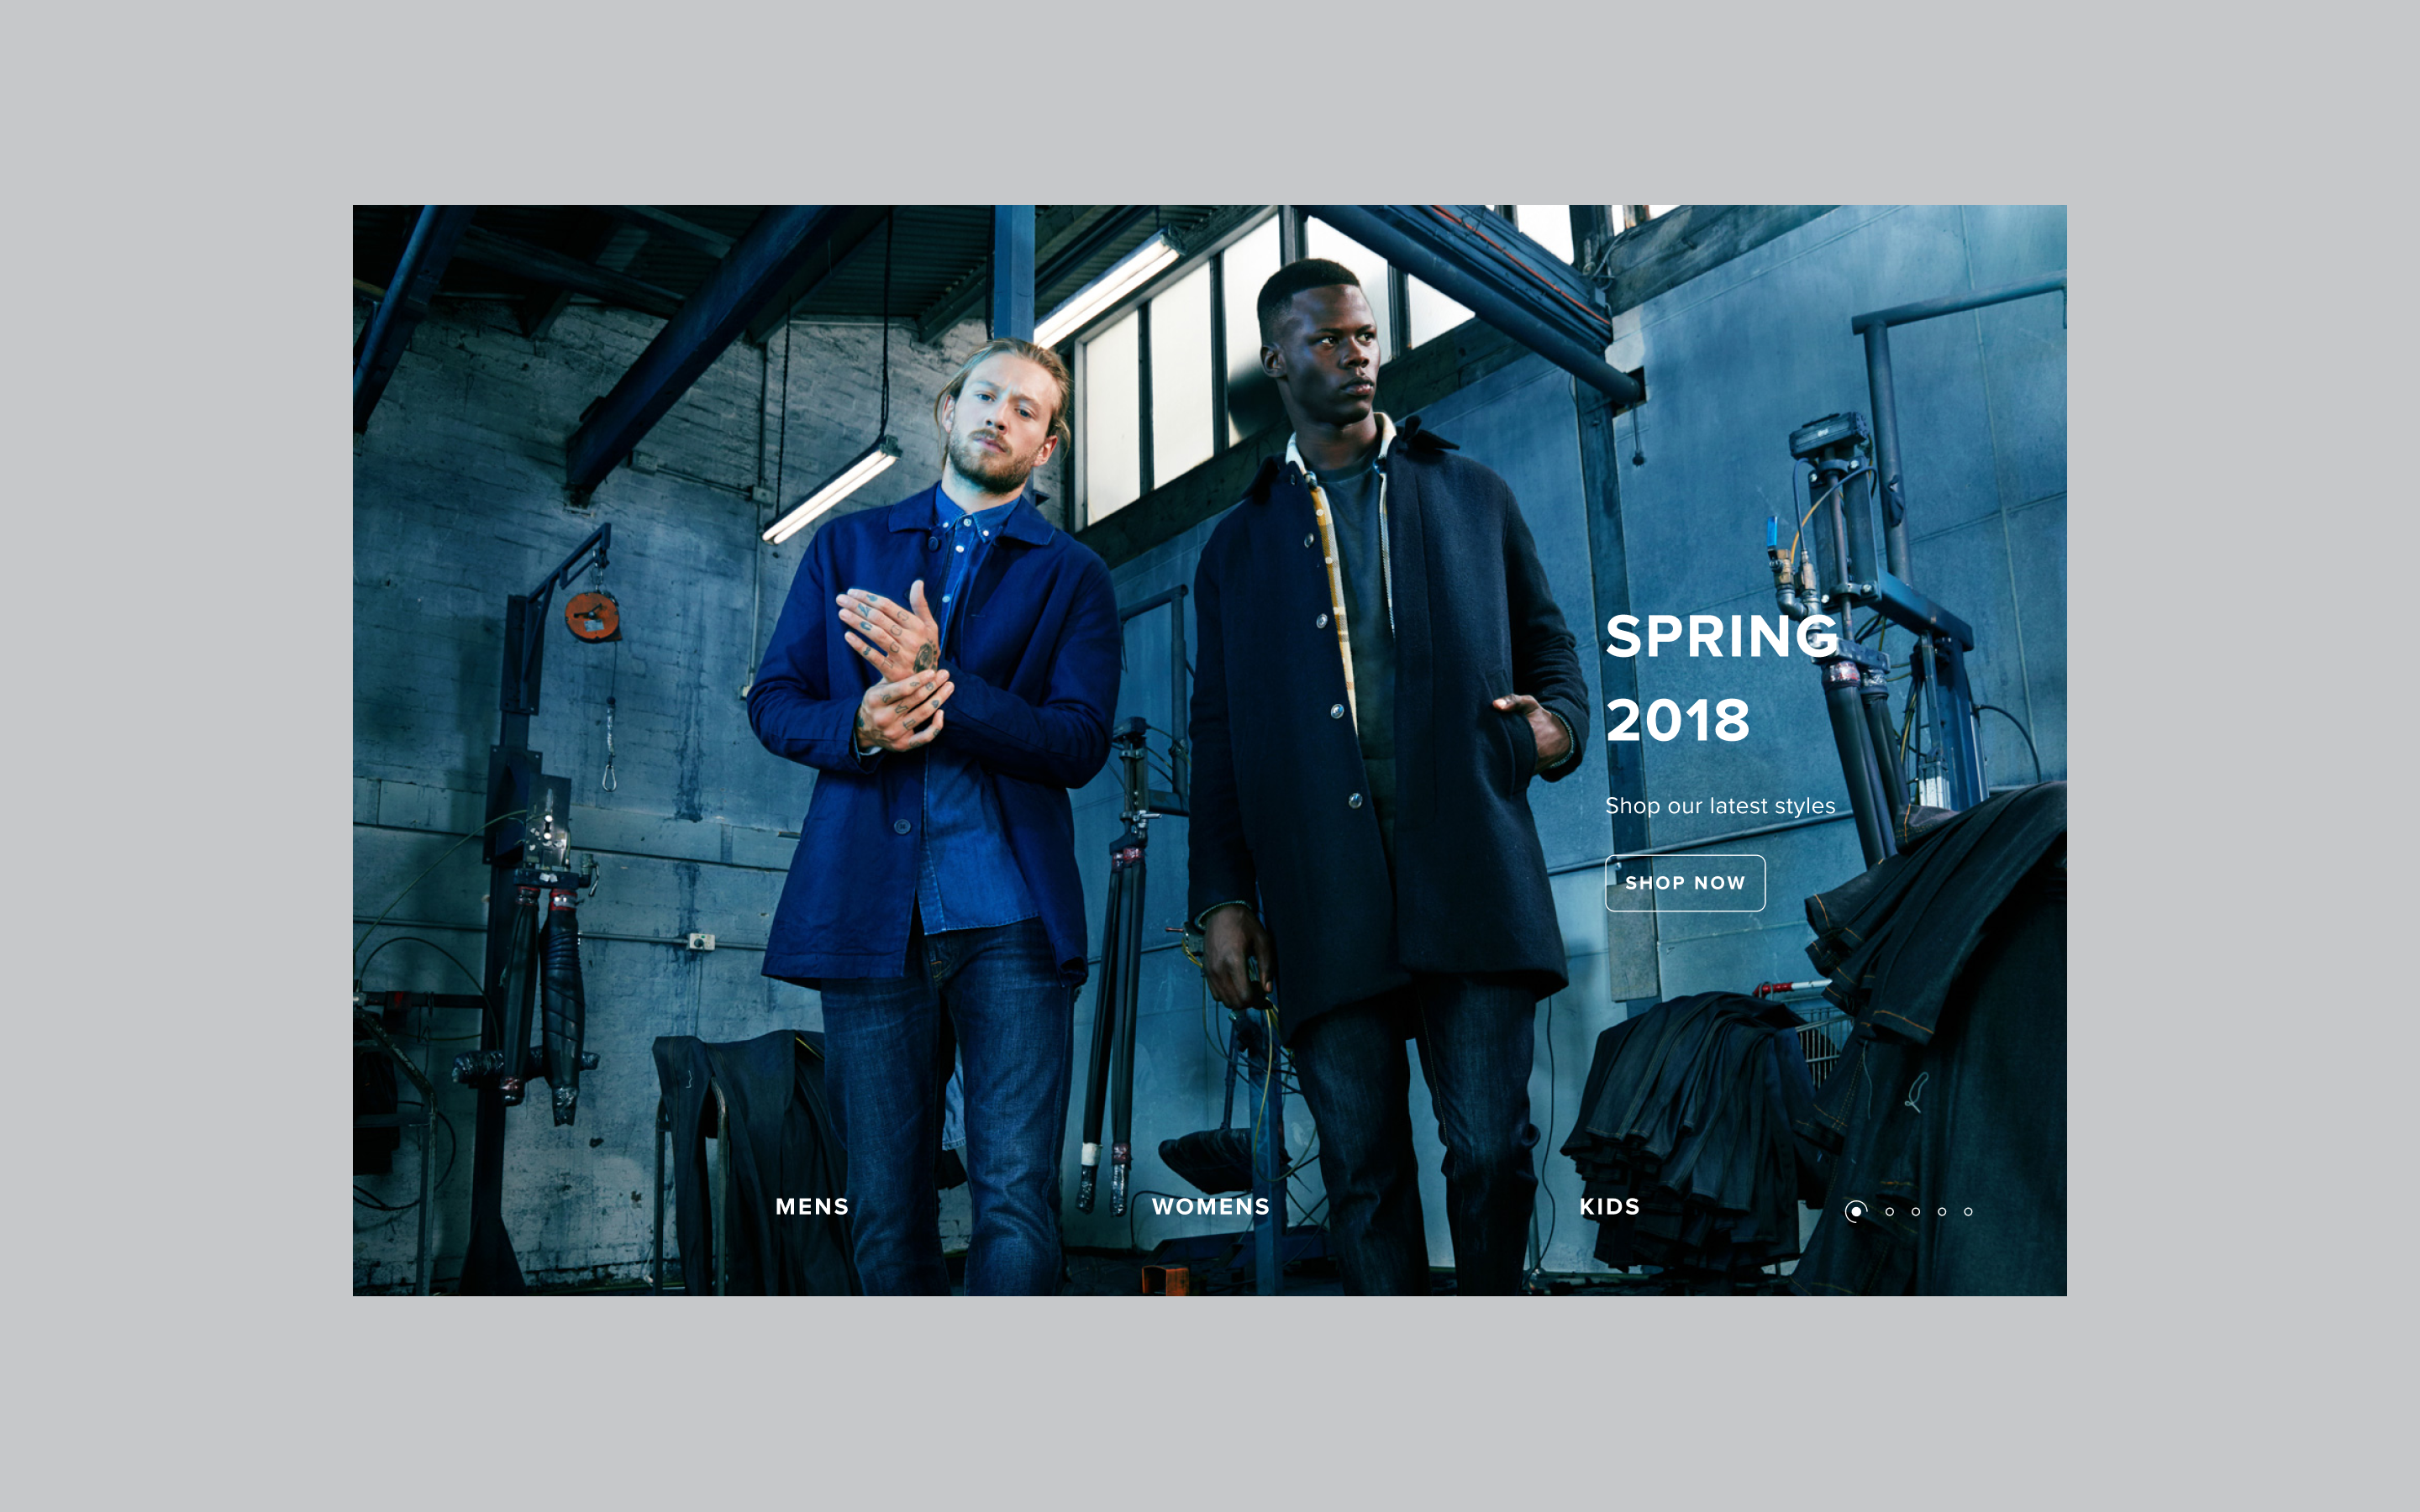 THE ICONIC website Spring 2018 page featuring two models in suits